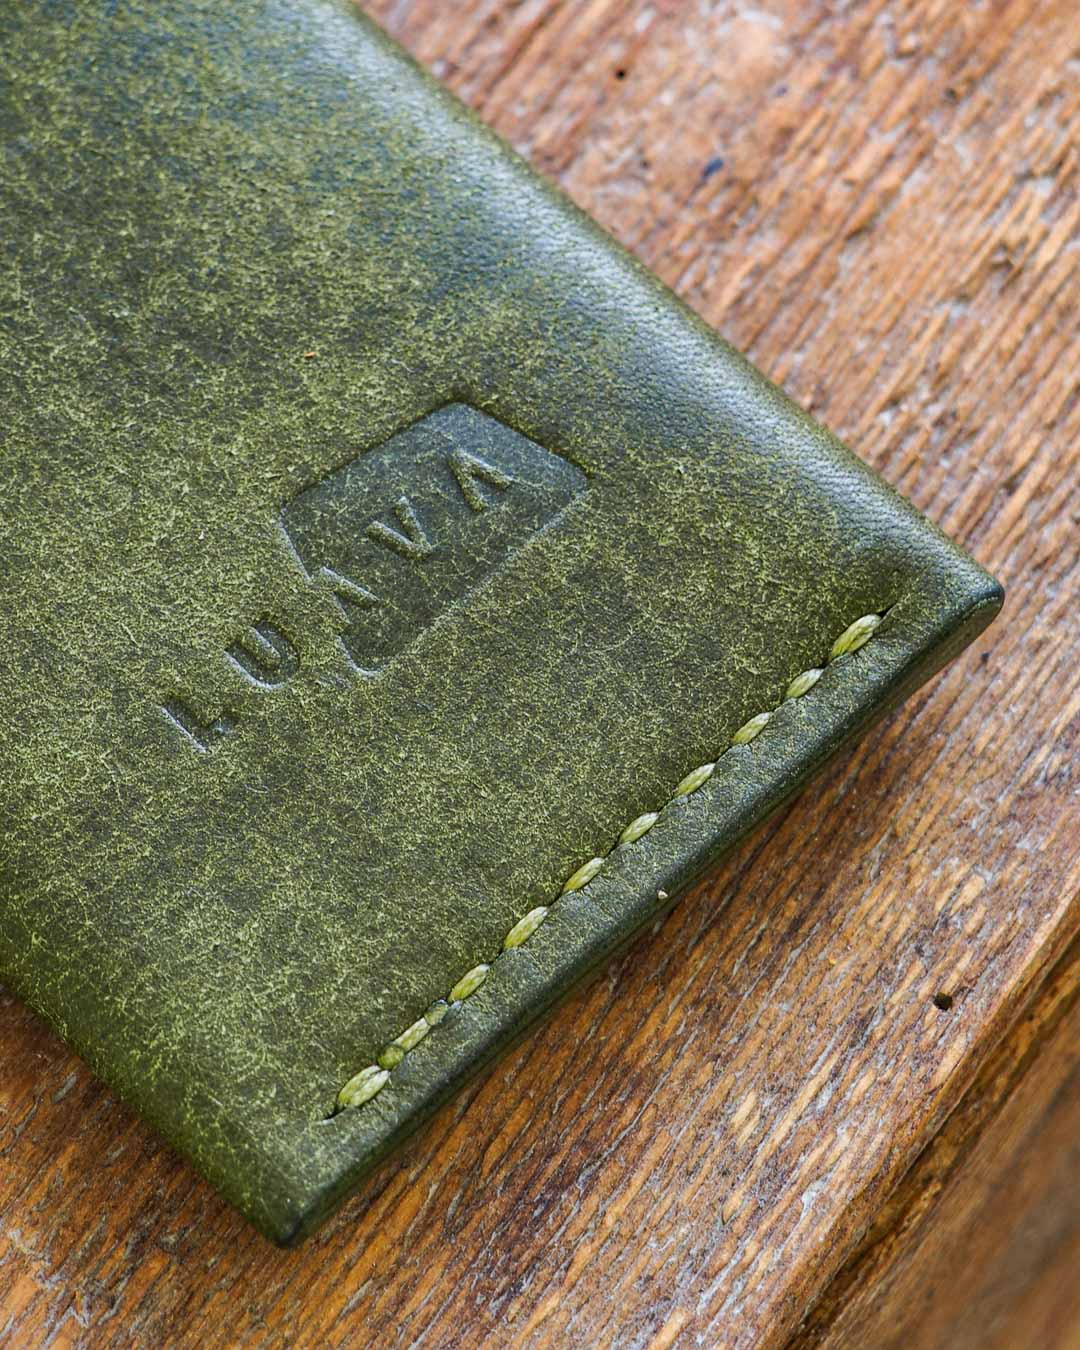 Luava handmade leather wallet handcrafted card holder cardholder made in finland vortex pueblo olive back logo detail